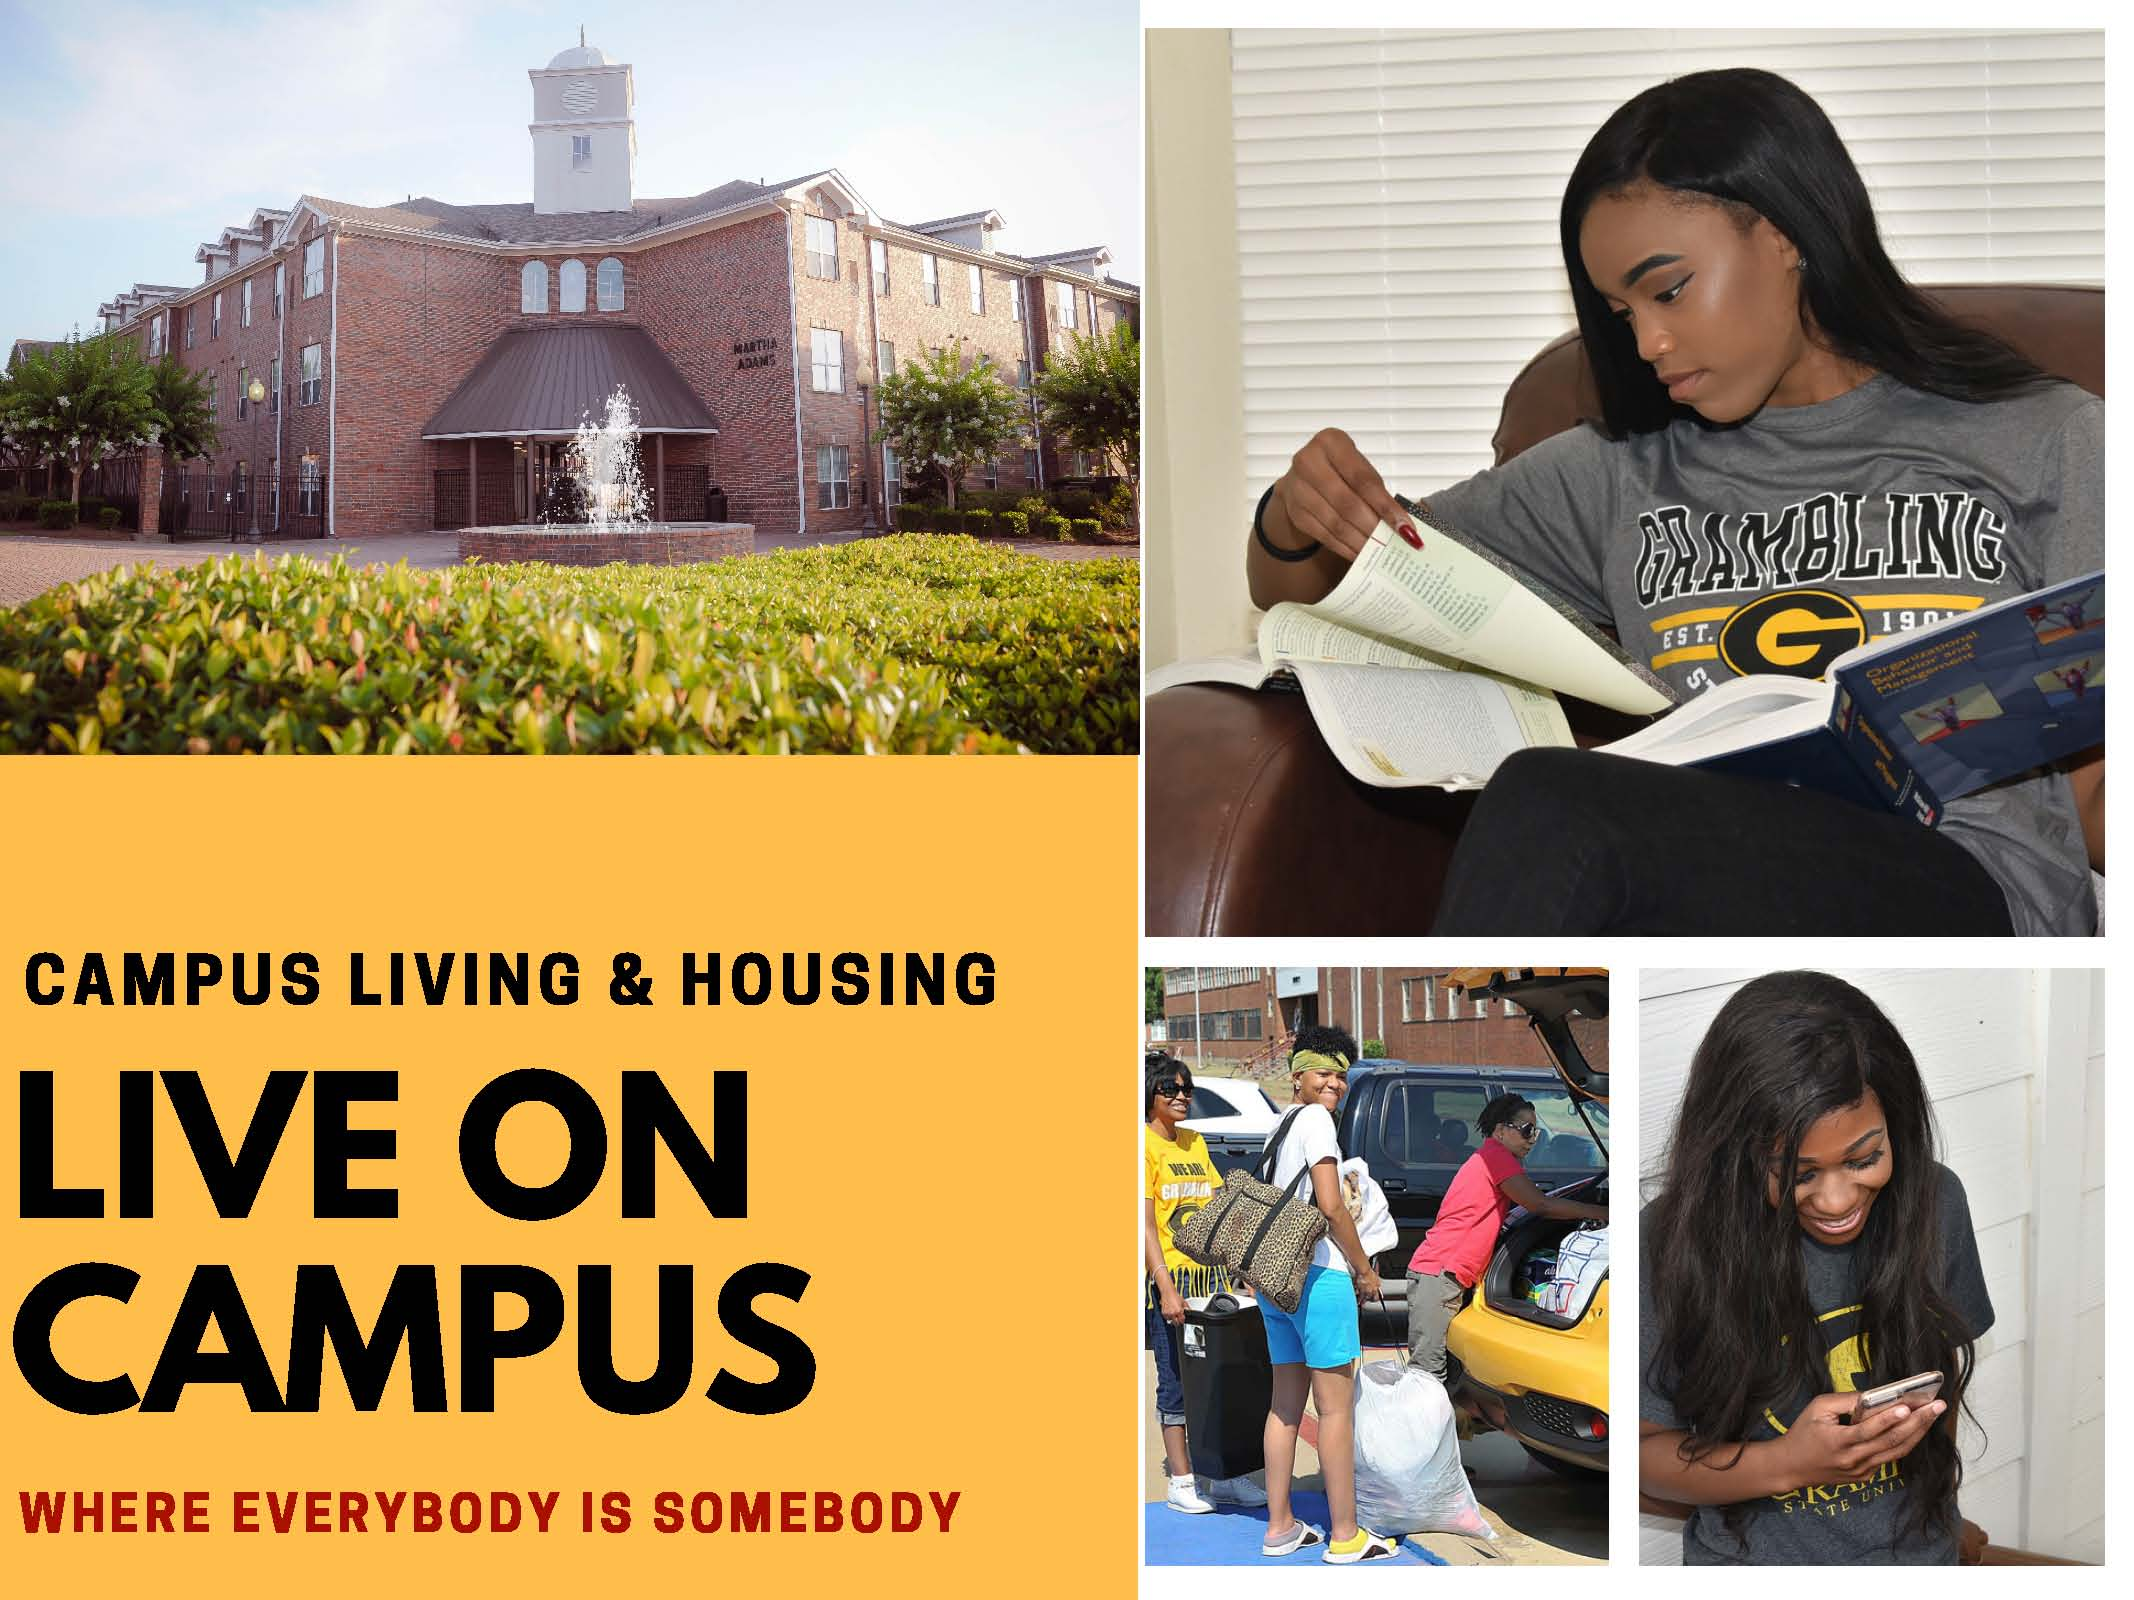 Housing & Residential Life slideshow - Welcome